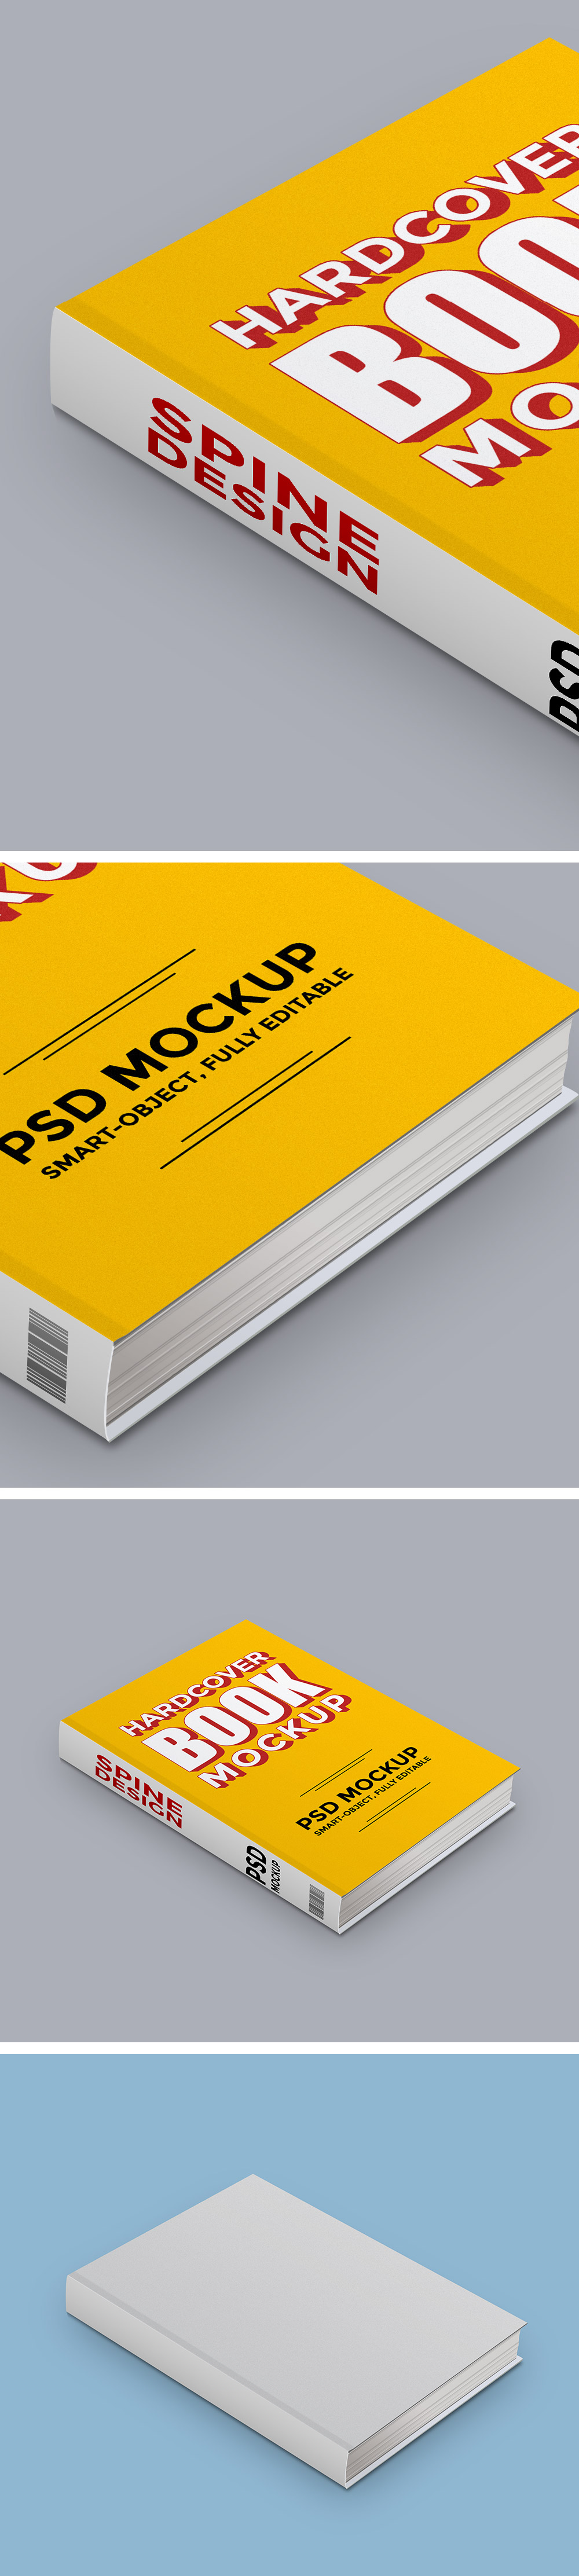 Free Hardcover Book PSD Mockup (6.21 MB) | GraphicsFuel | #free ...